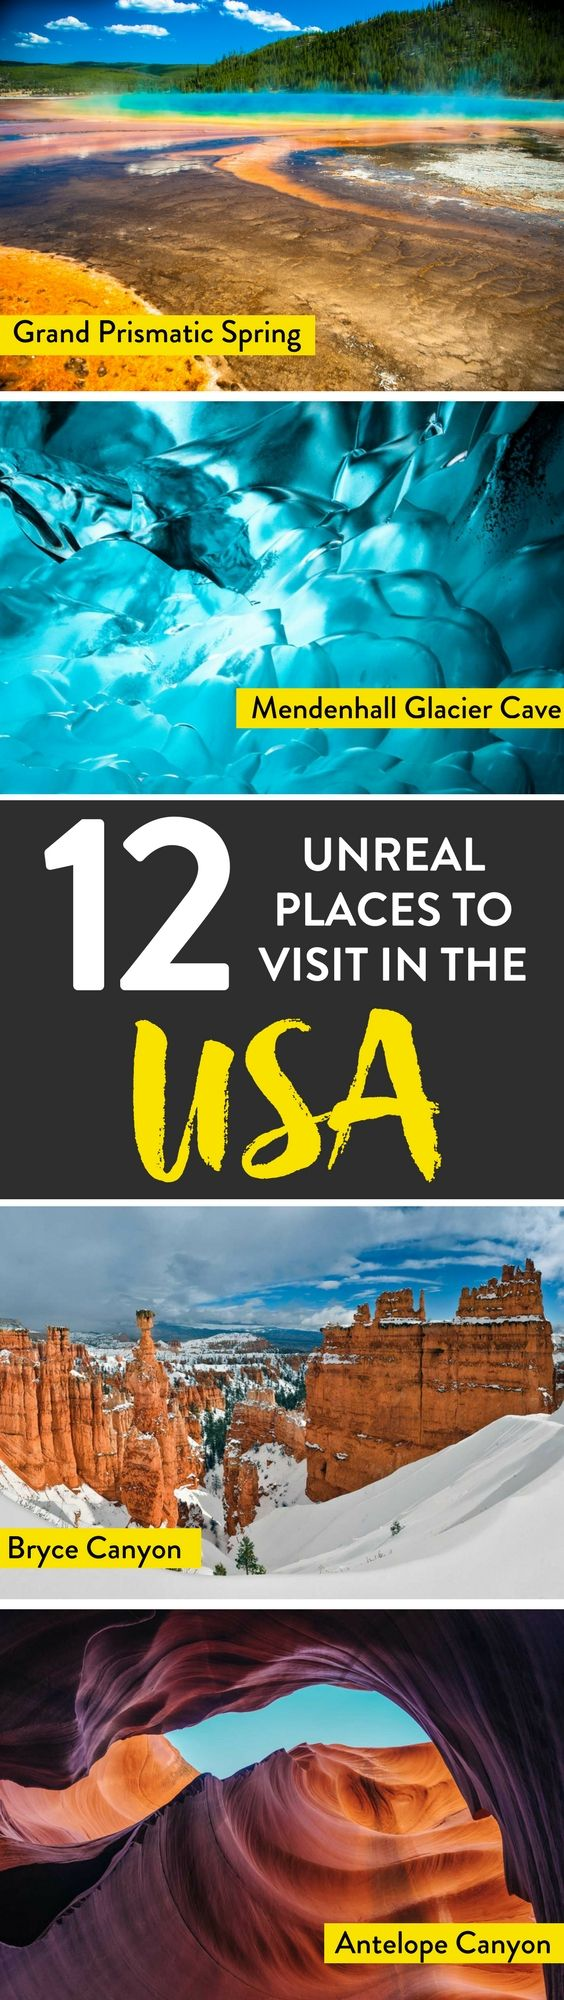 USA TRAVEL | Thinking of traveling around the US? Here are a few unbelievable destinations which have to make it to your USA bucket list.